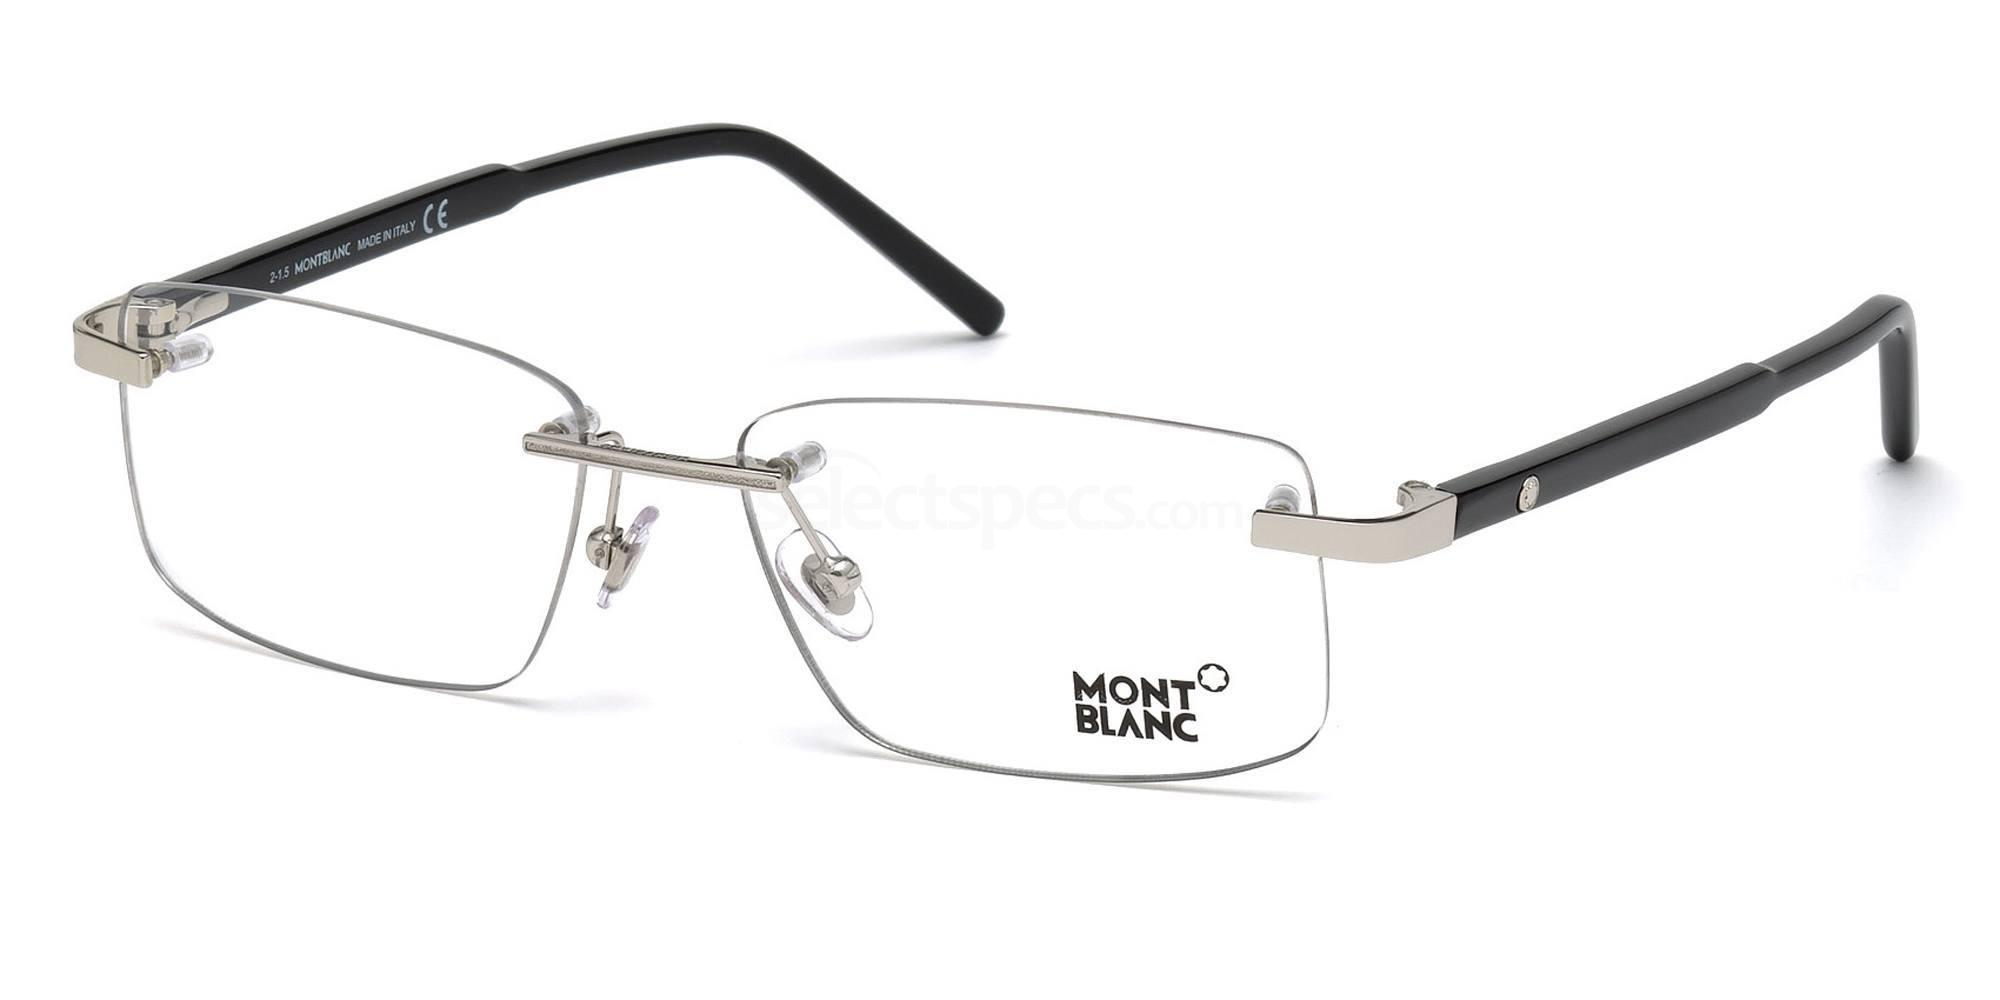 016 MB0580 Glasses, Mont Blanc